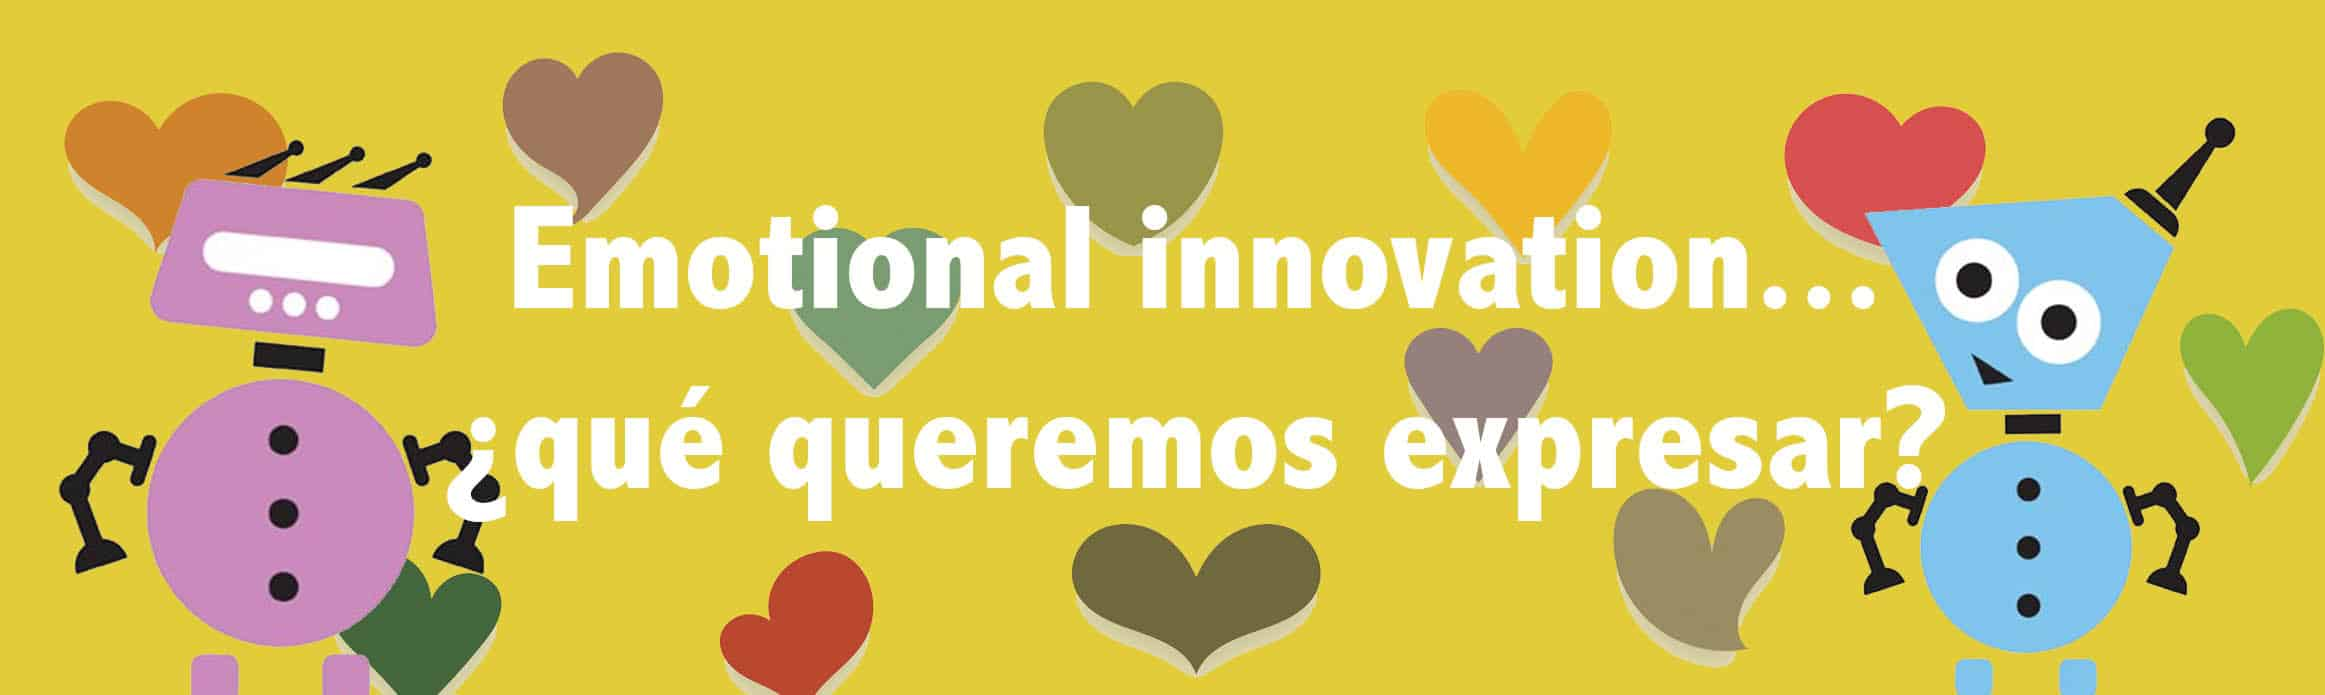 emotional innovation